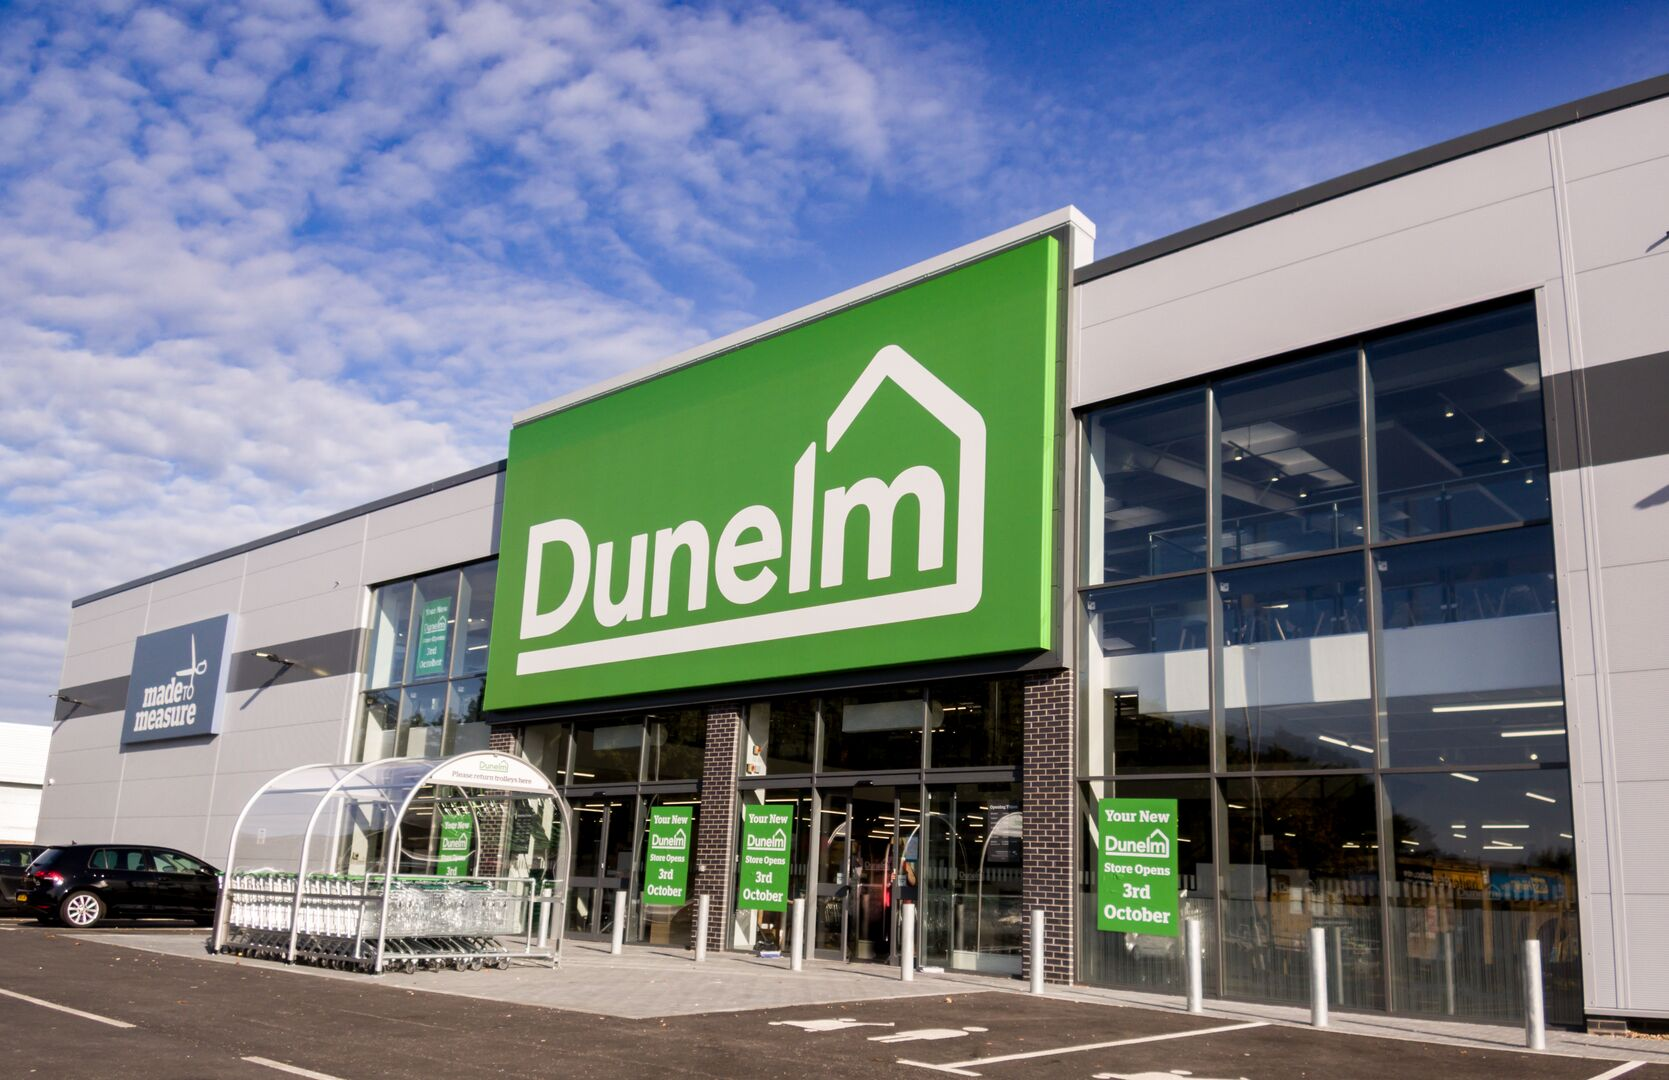 dunelm tata steel construction wall facade